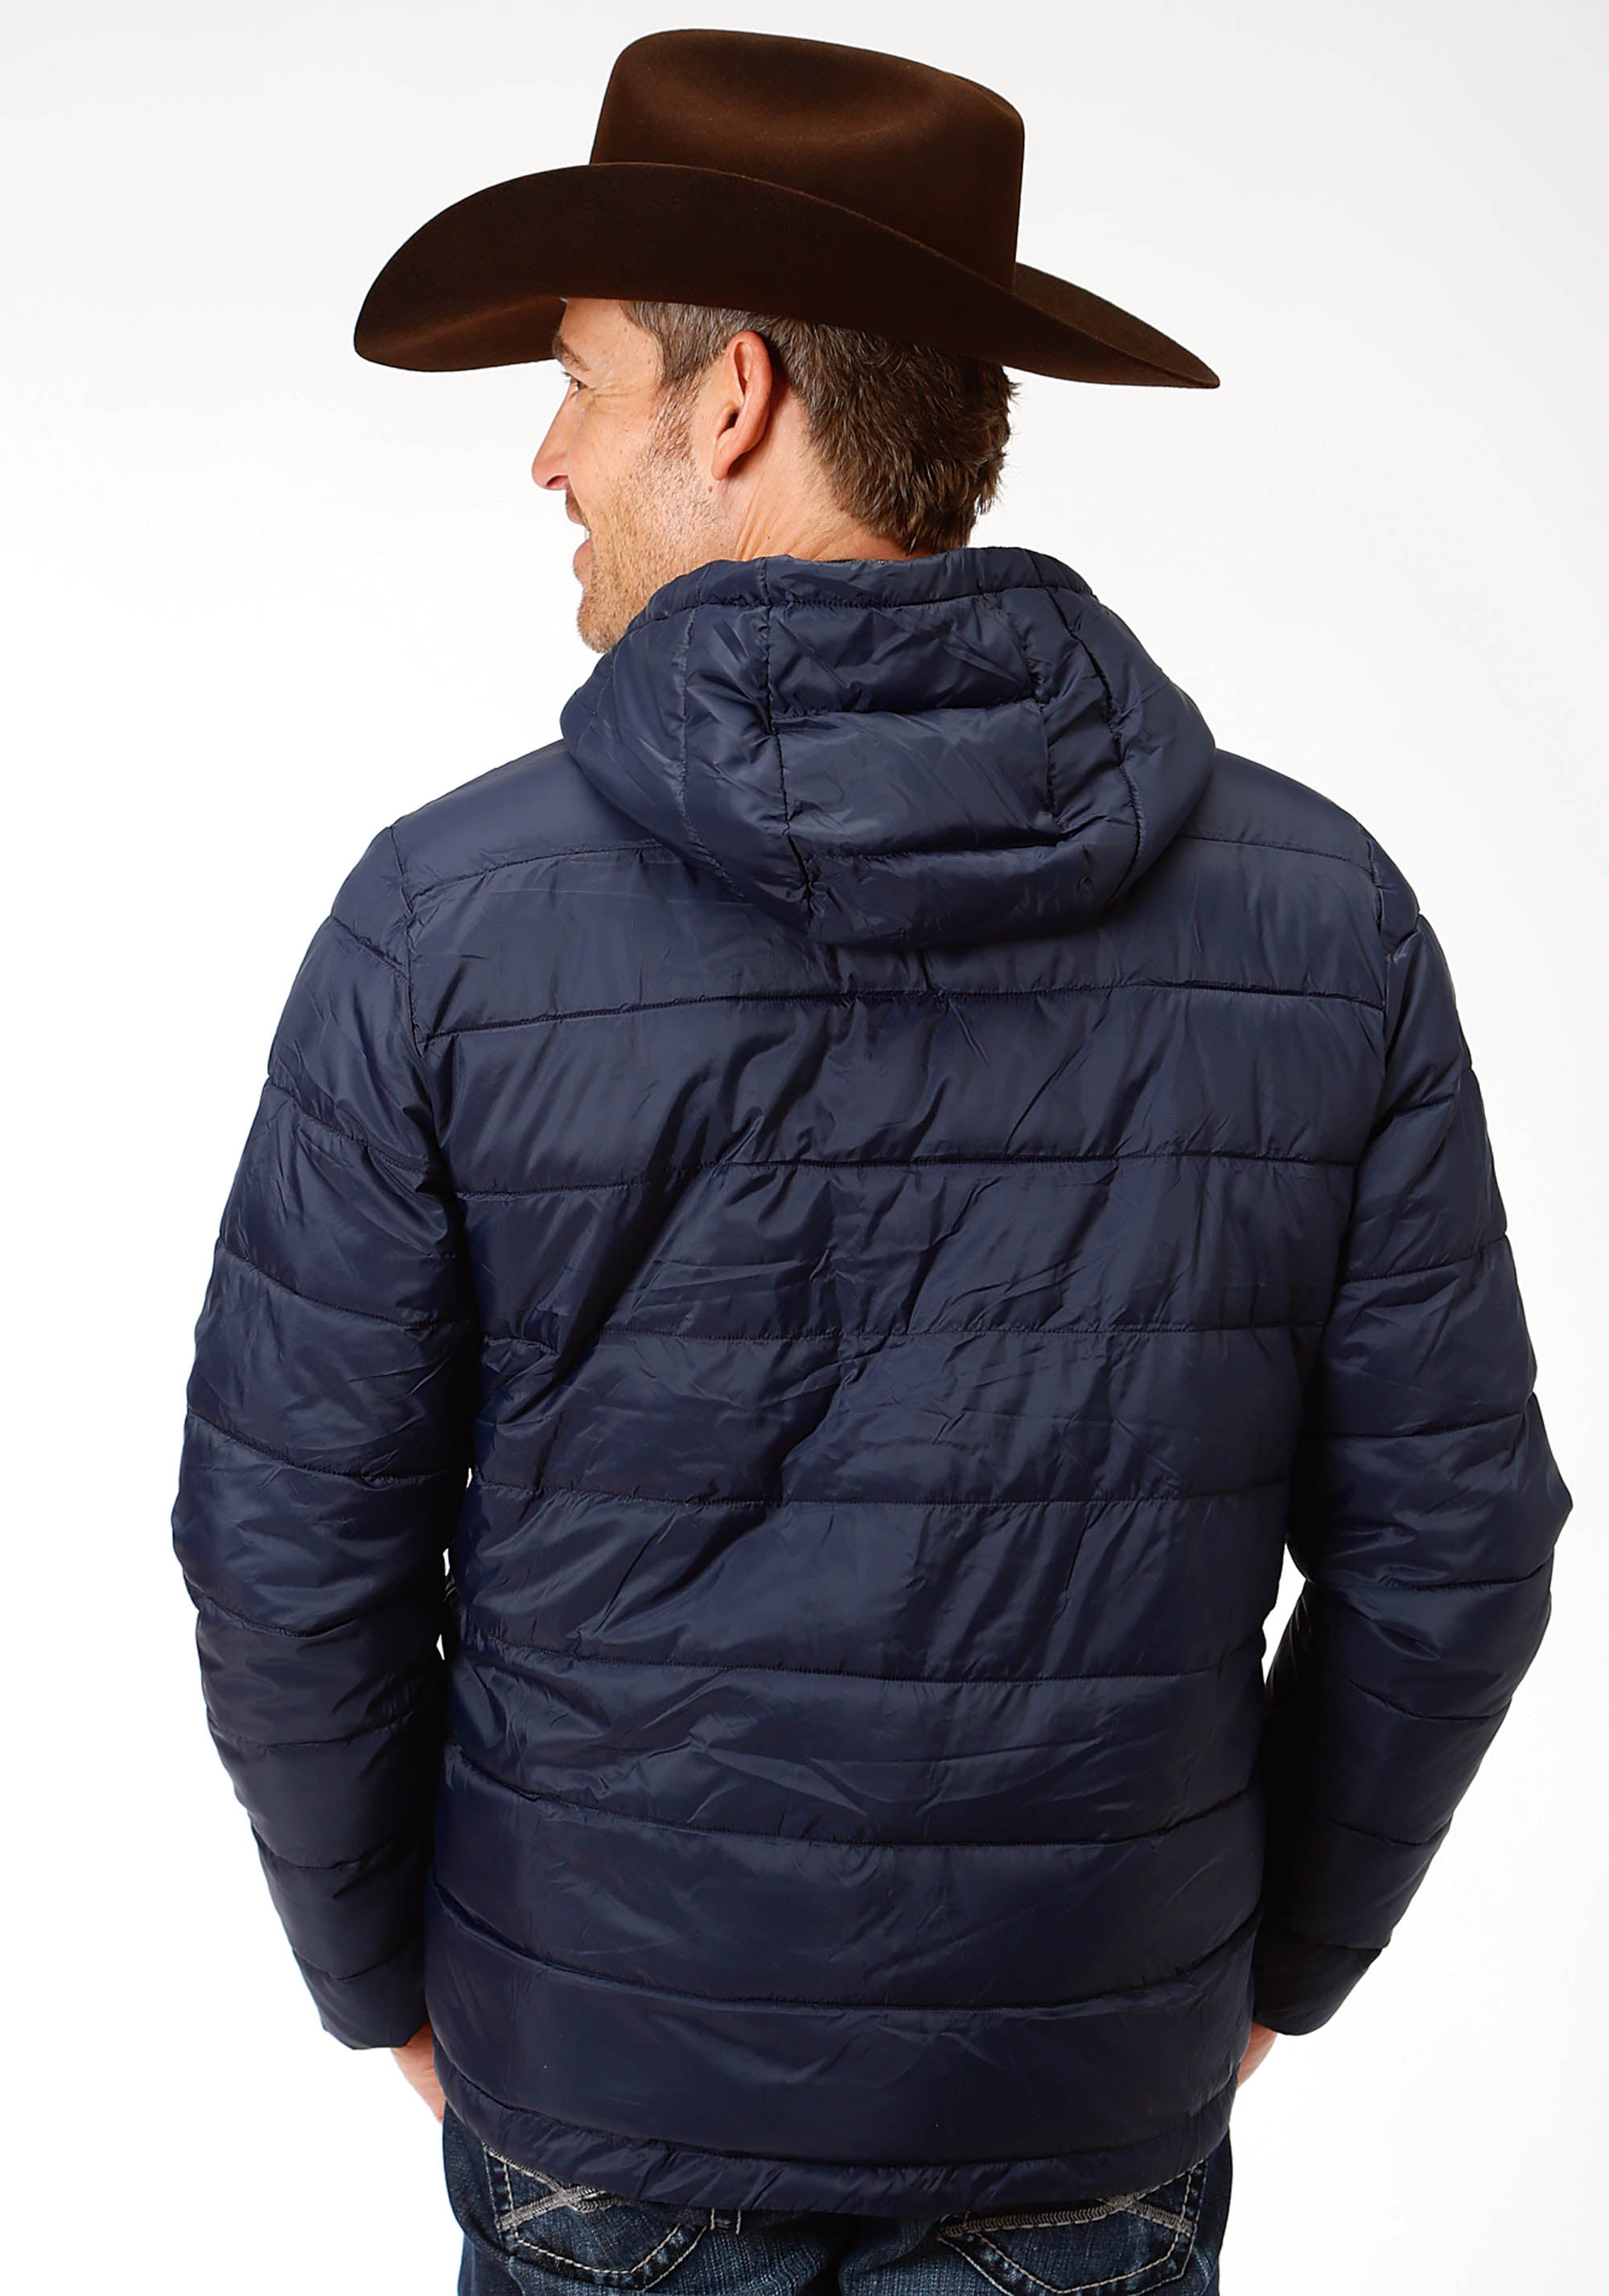 ROPER MENS BLUE 4043 POLY FILLED NYLON PULLOVER JACKET ROPER OUTERWEAR- MEN'S JACKET